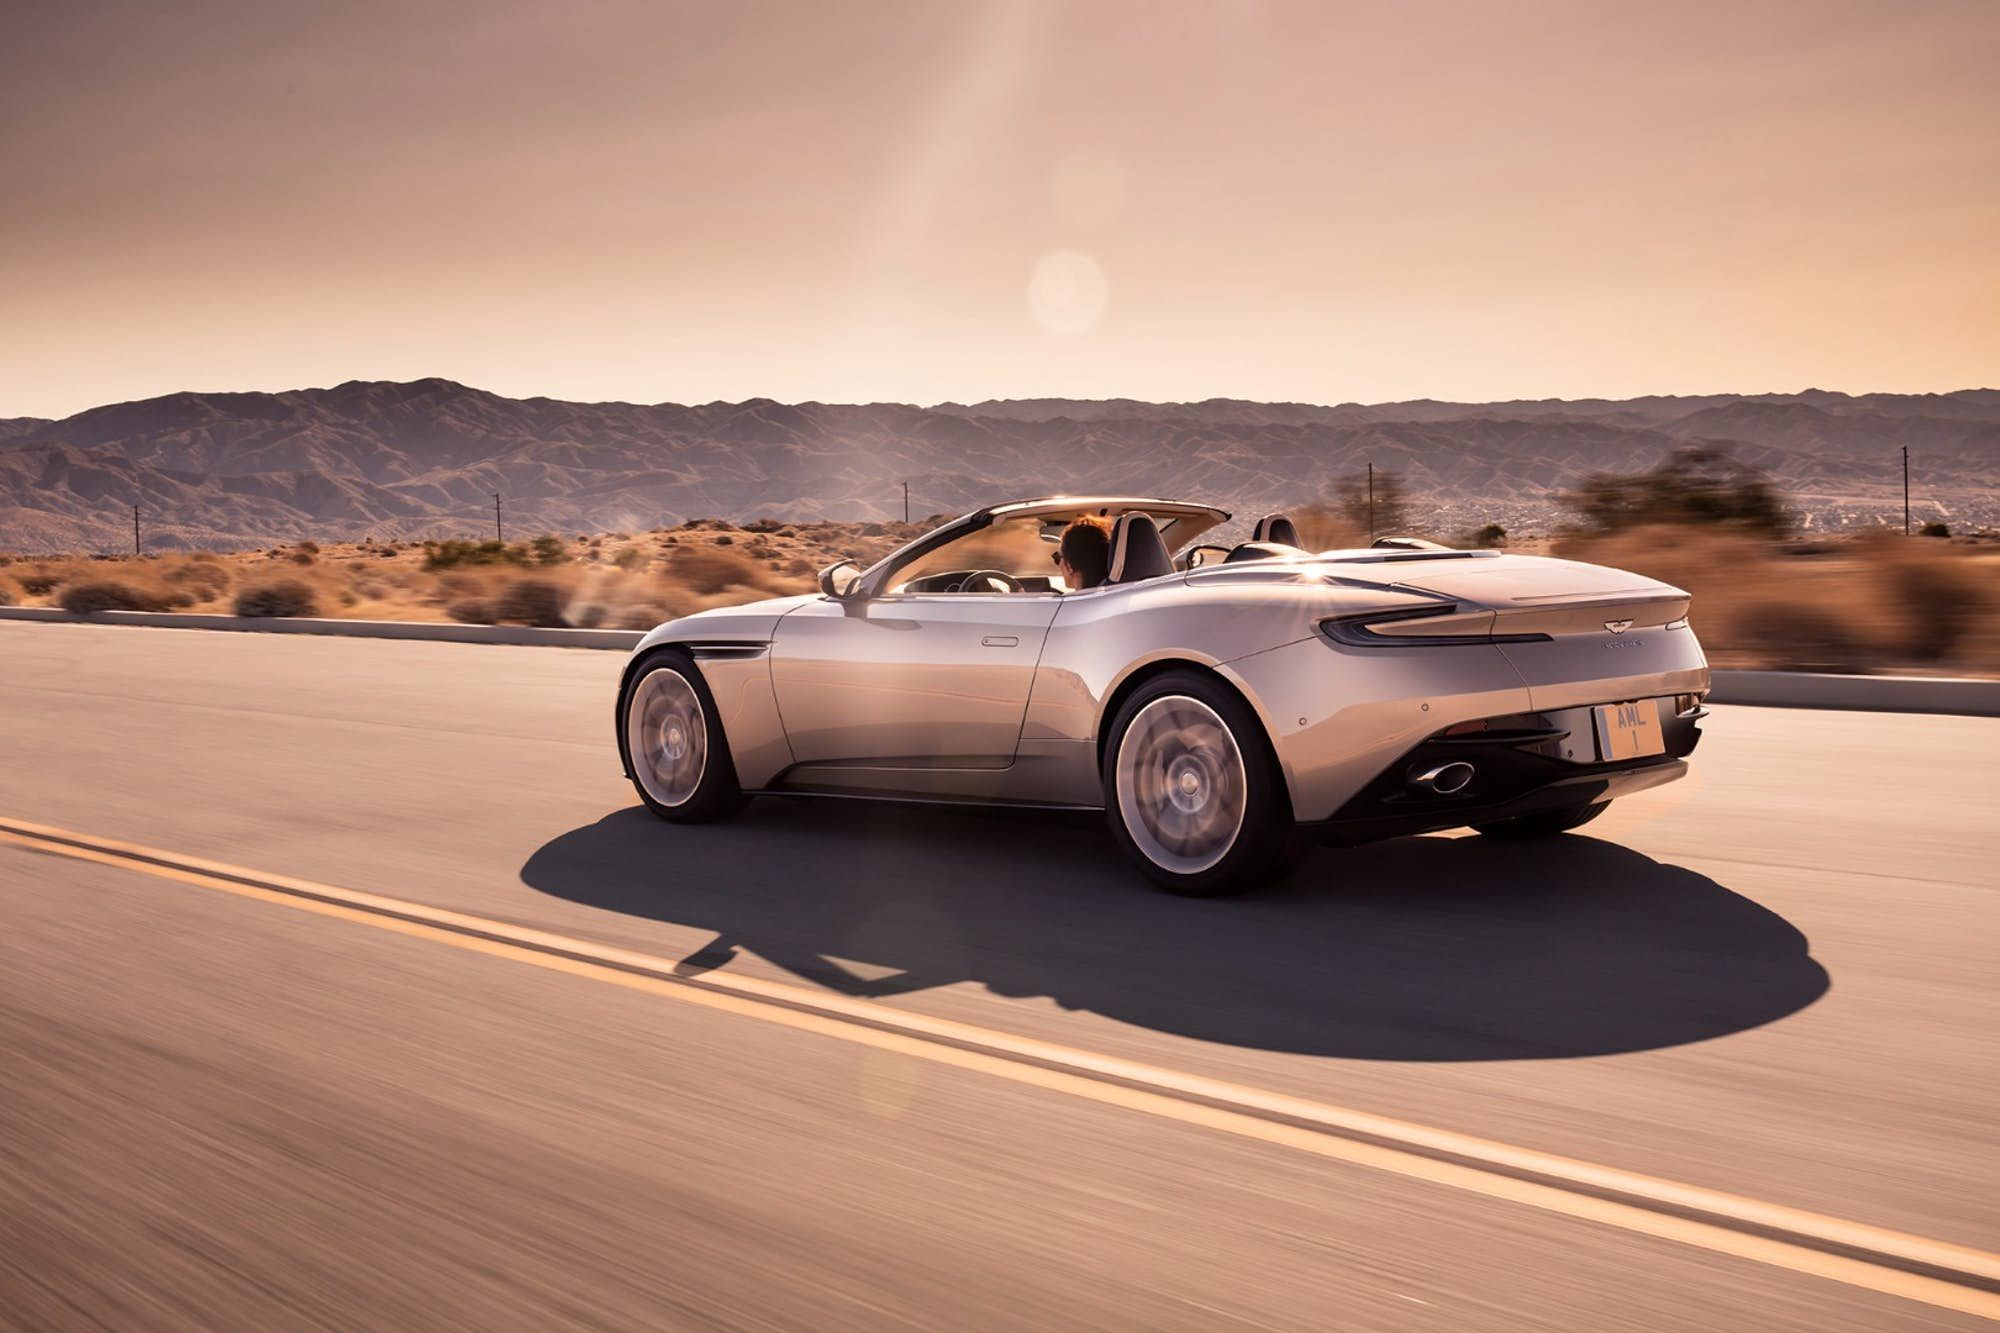 Aston Martin Peels The Roof Back On The Db11 2020 画像あり